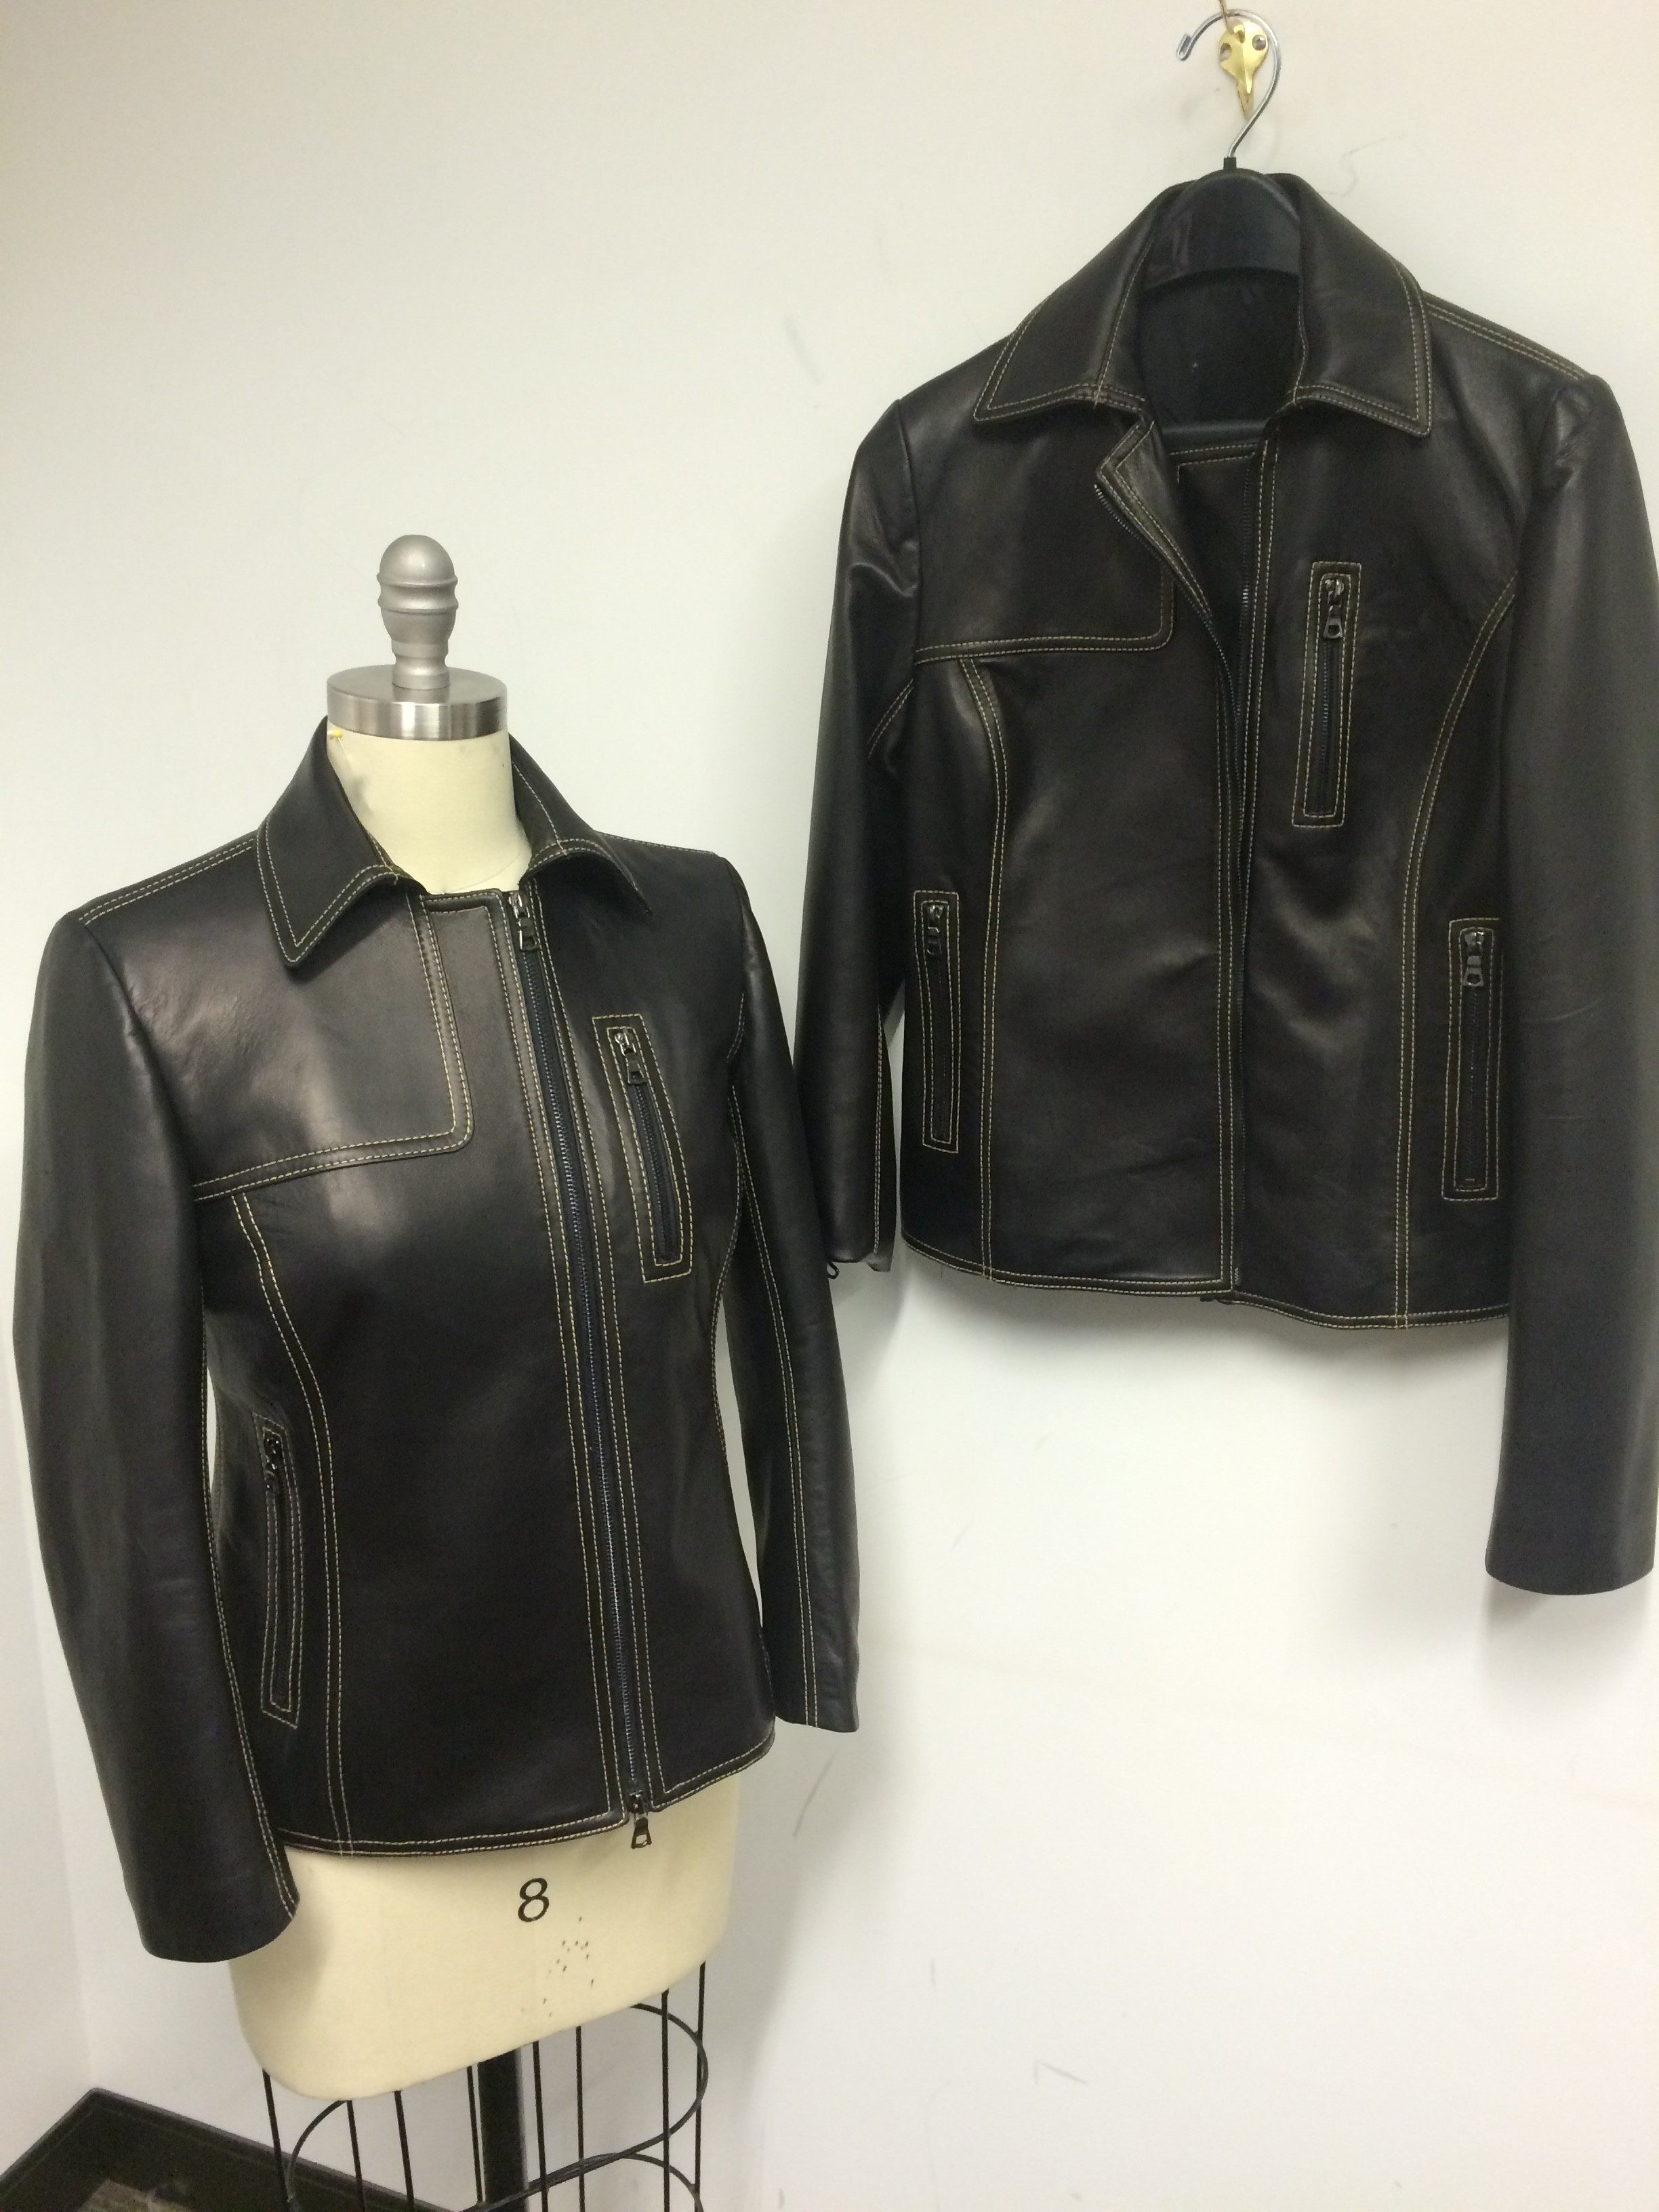 Leather Jacket Alterations Nyc - Jacket